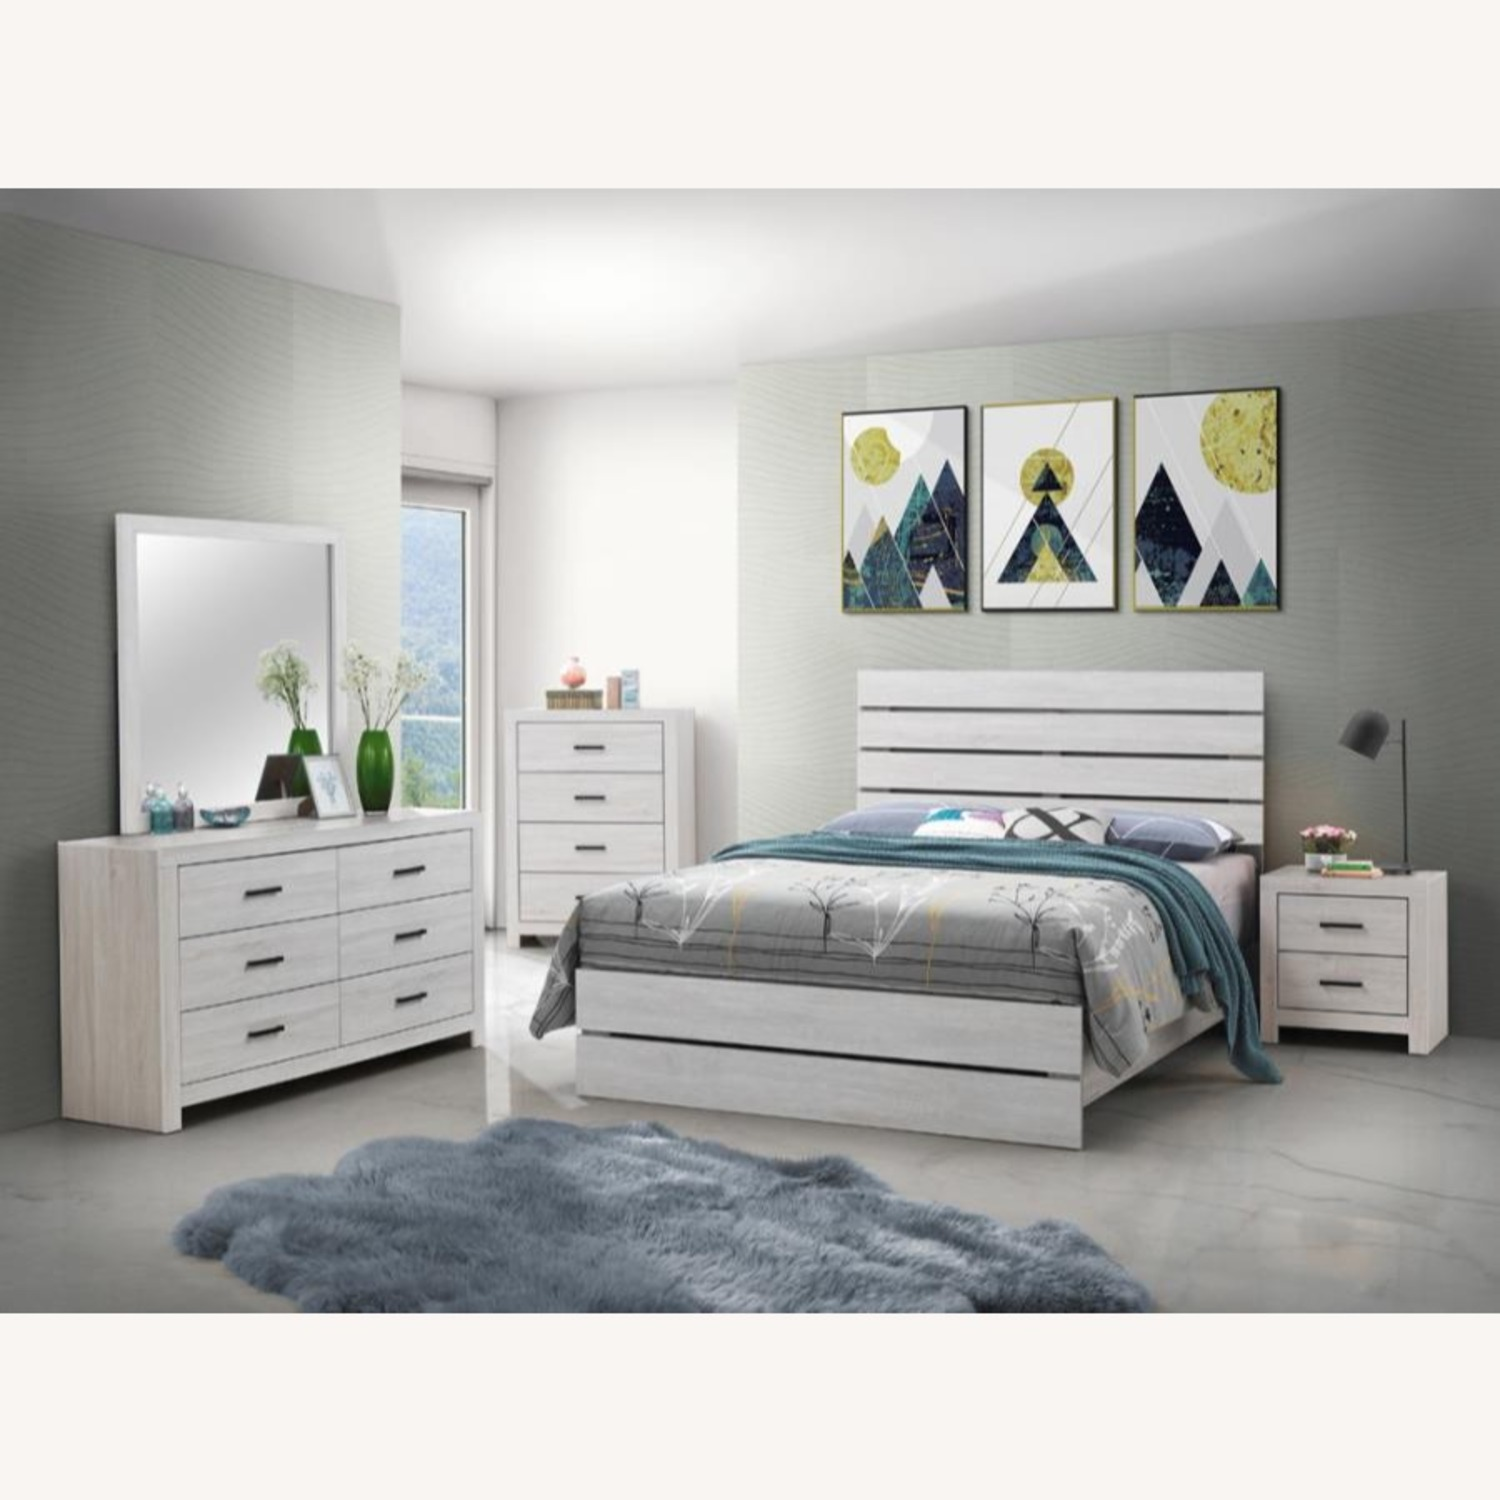 King Bed In Coastal White W/ 3D Paper Laminate - image-2